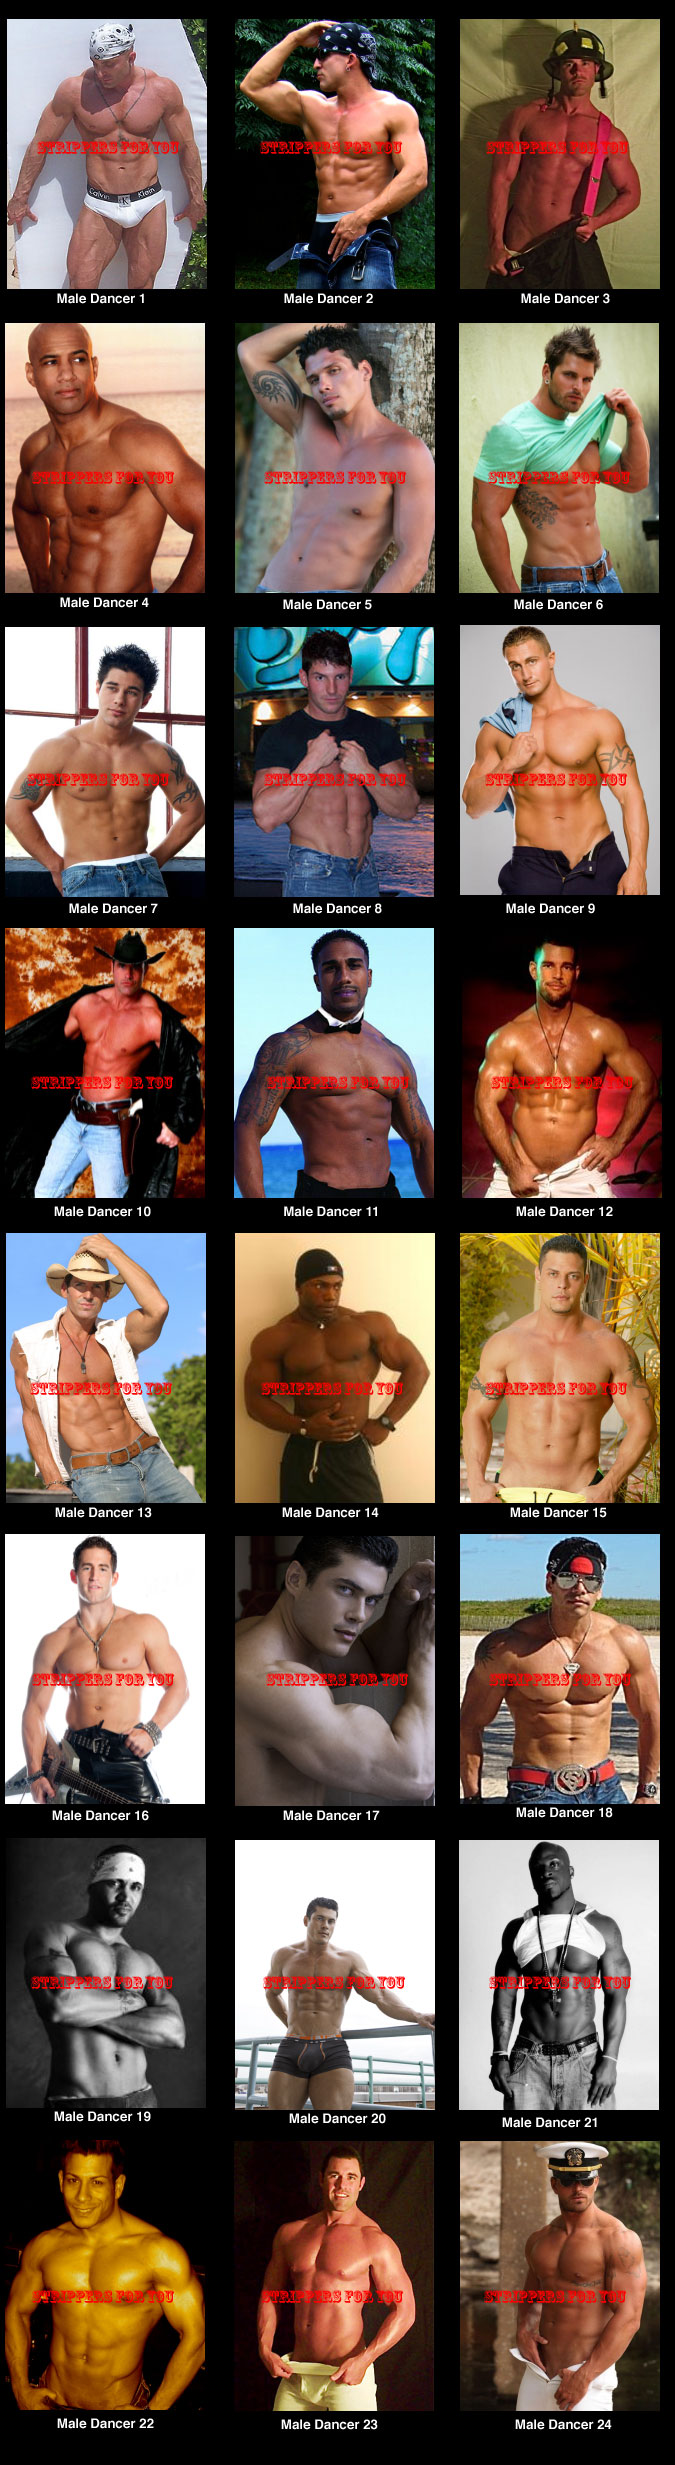 Oakland male strippers